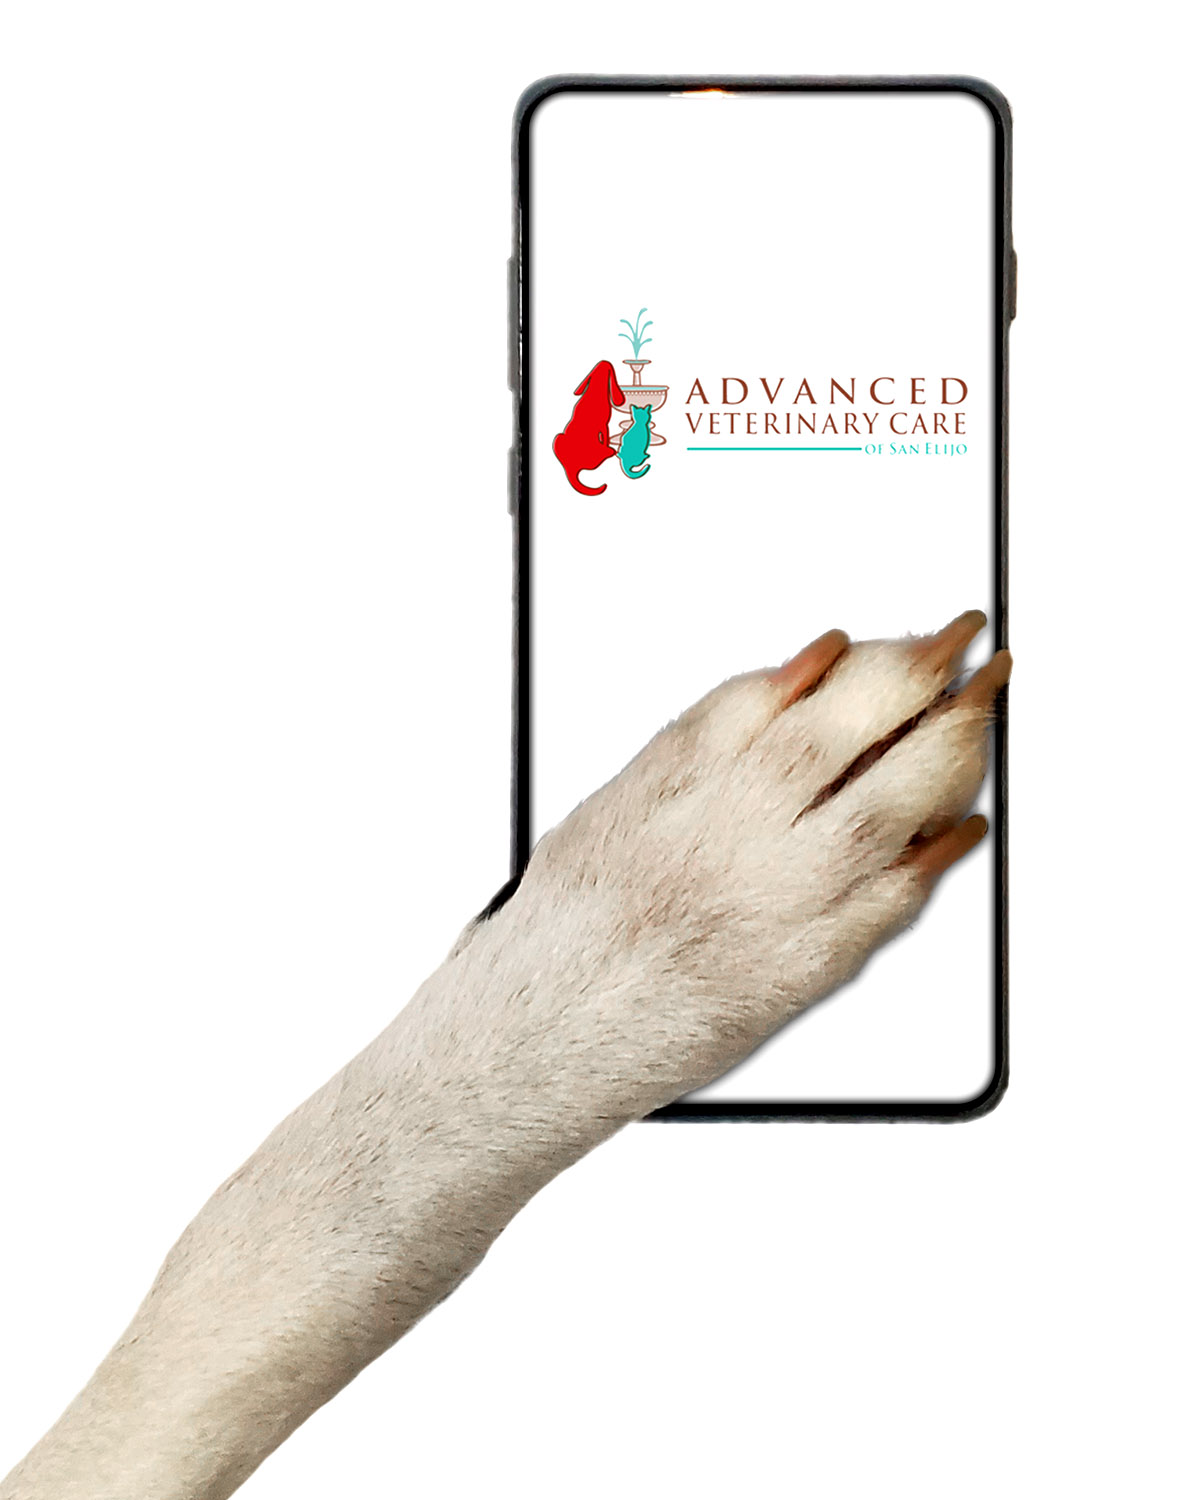 Veterinary Telemedicine Services: image of dog's paw on cell phone.